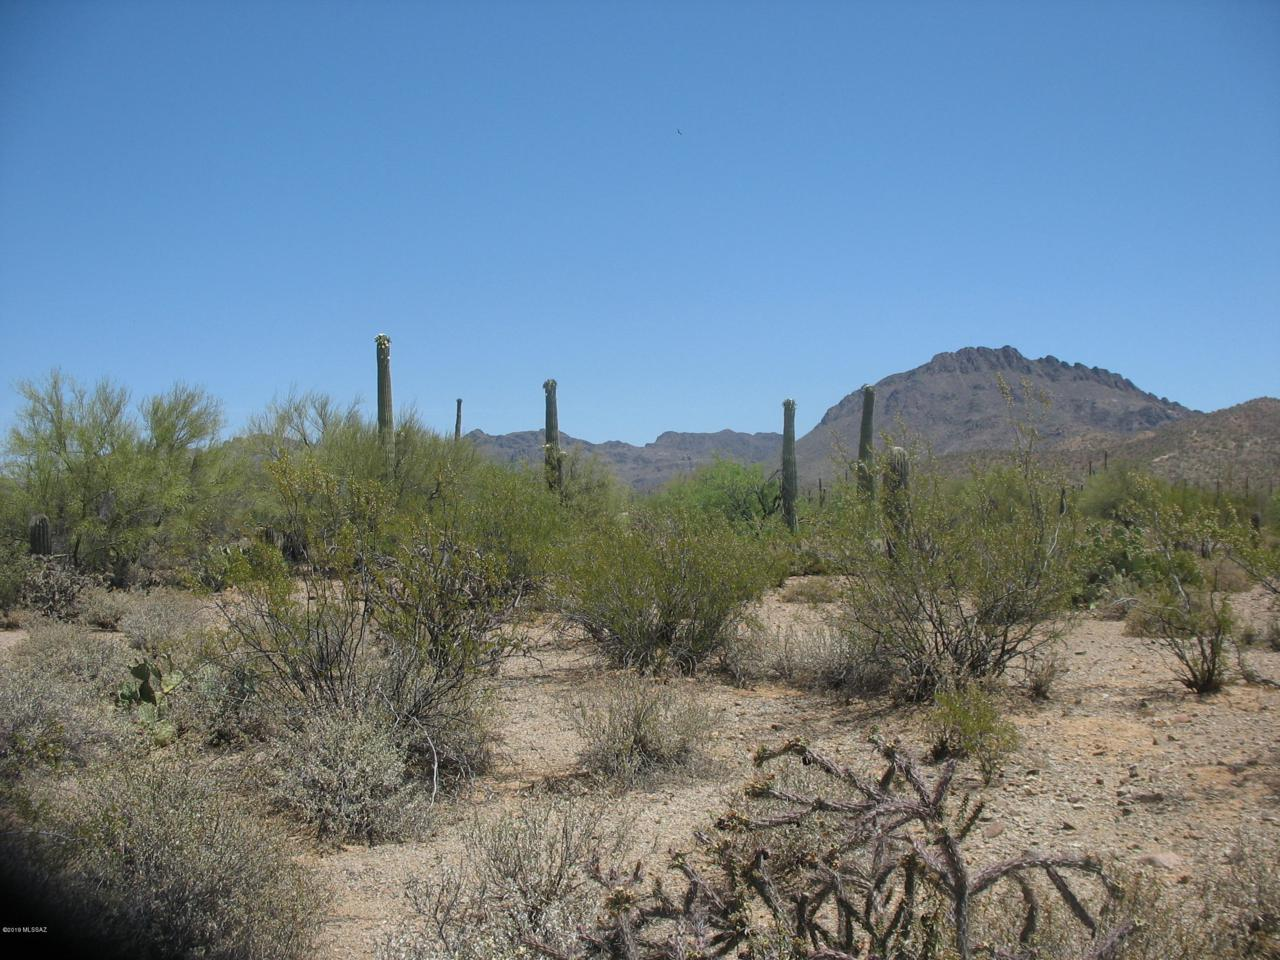 https://bt-photos.global.ssl.fastly.net/tucson/1280_boomver_1_21915284-2.jpg